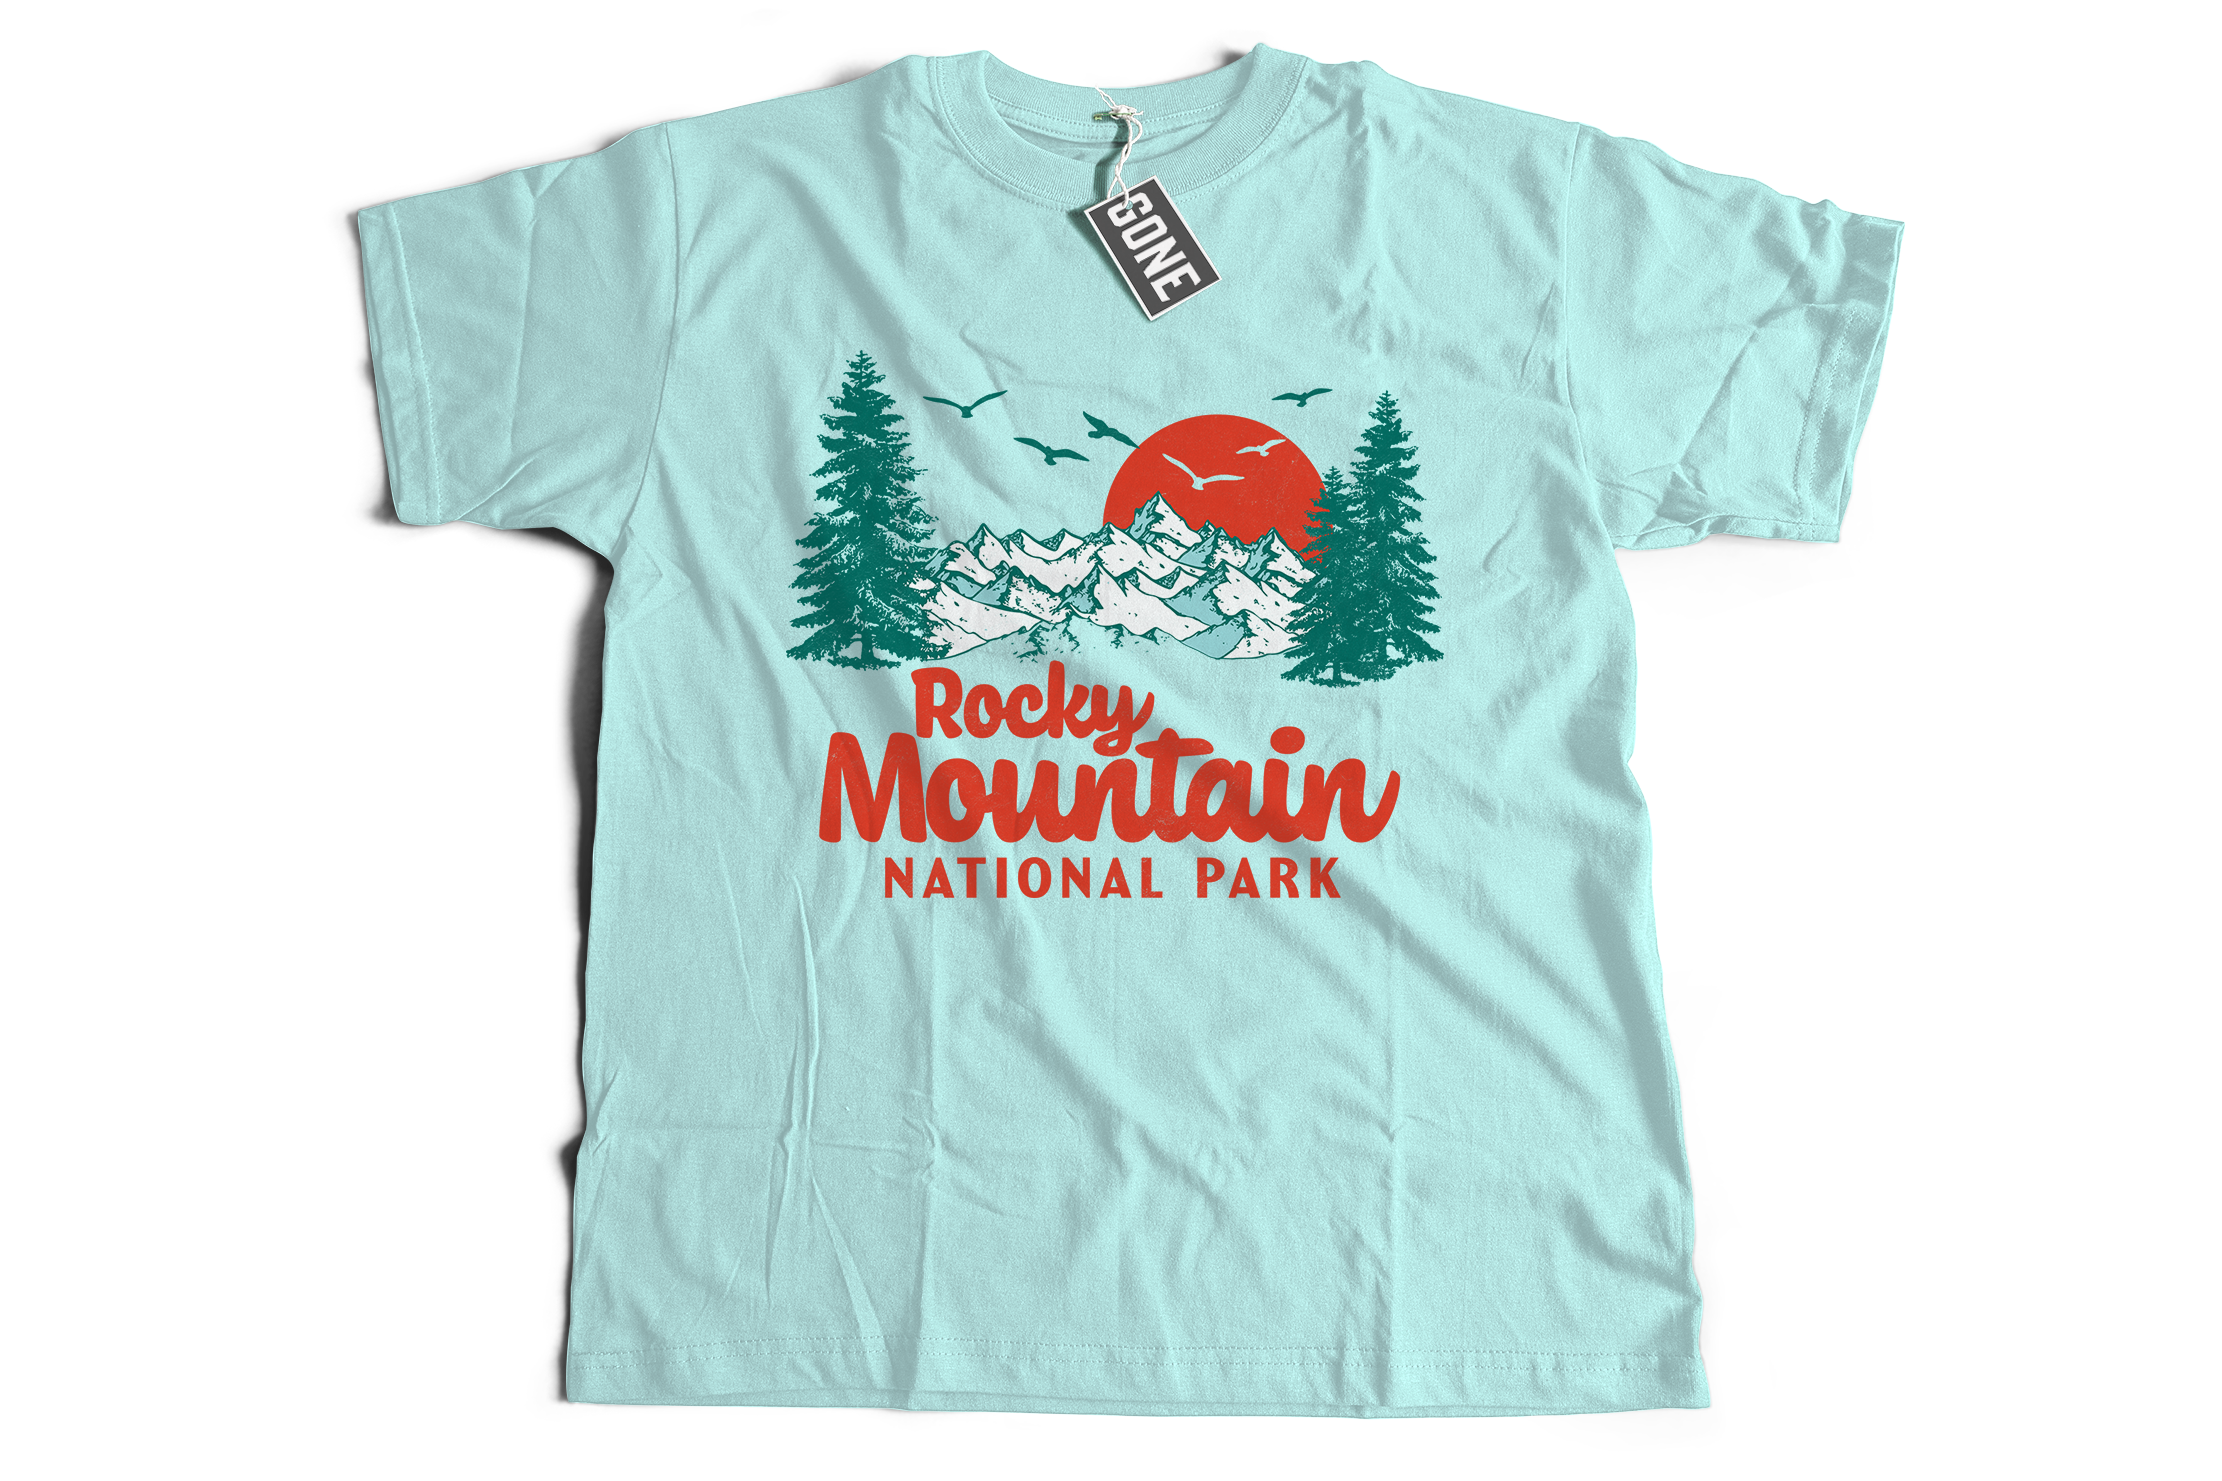 Rocky Mountain National Park Short-Sleeve Unisex T-Shirt